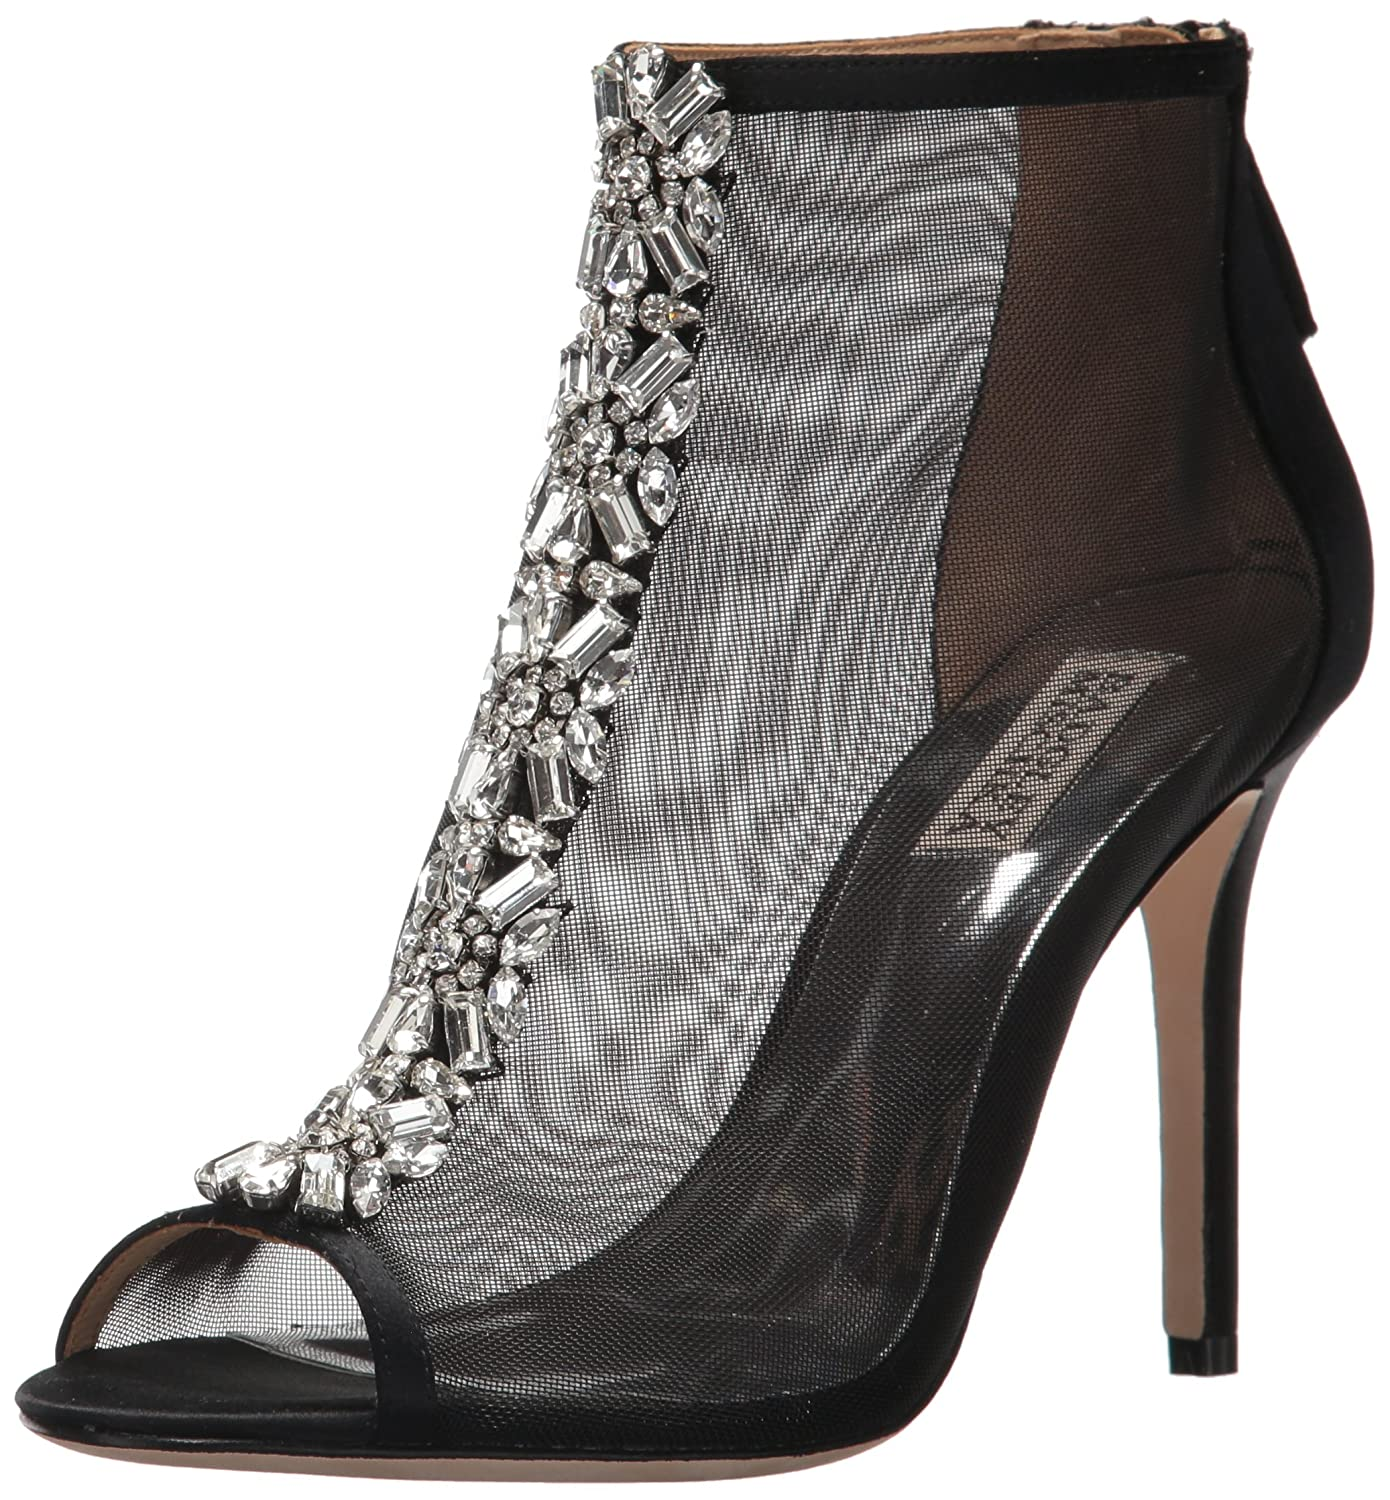 Badgley Mischka Women's Moss Ankle Boot B0734Z26SZ 11 B(M) US|Black